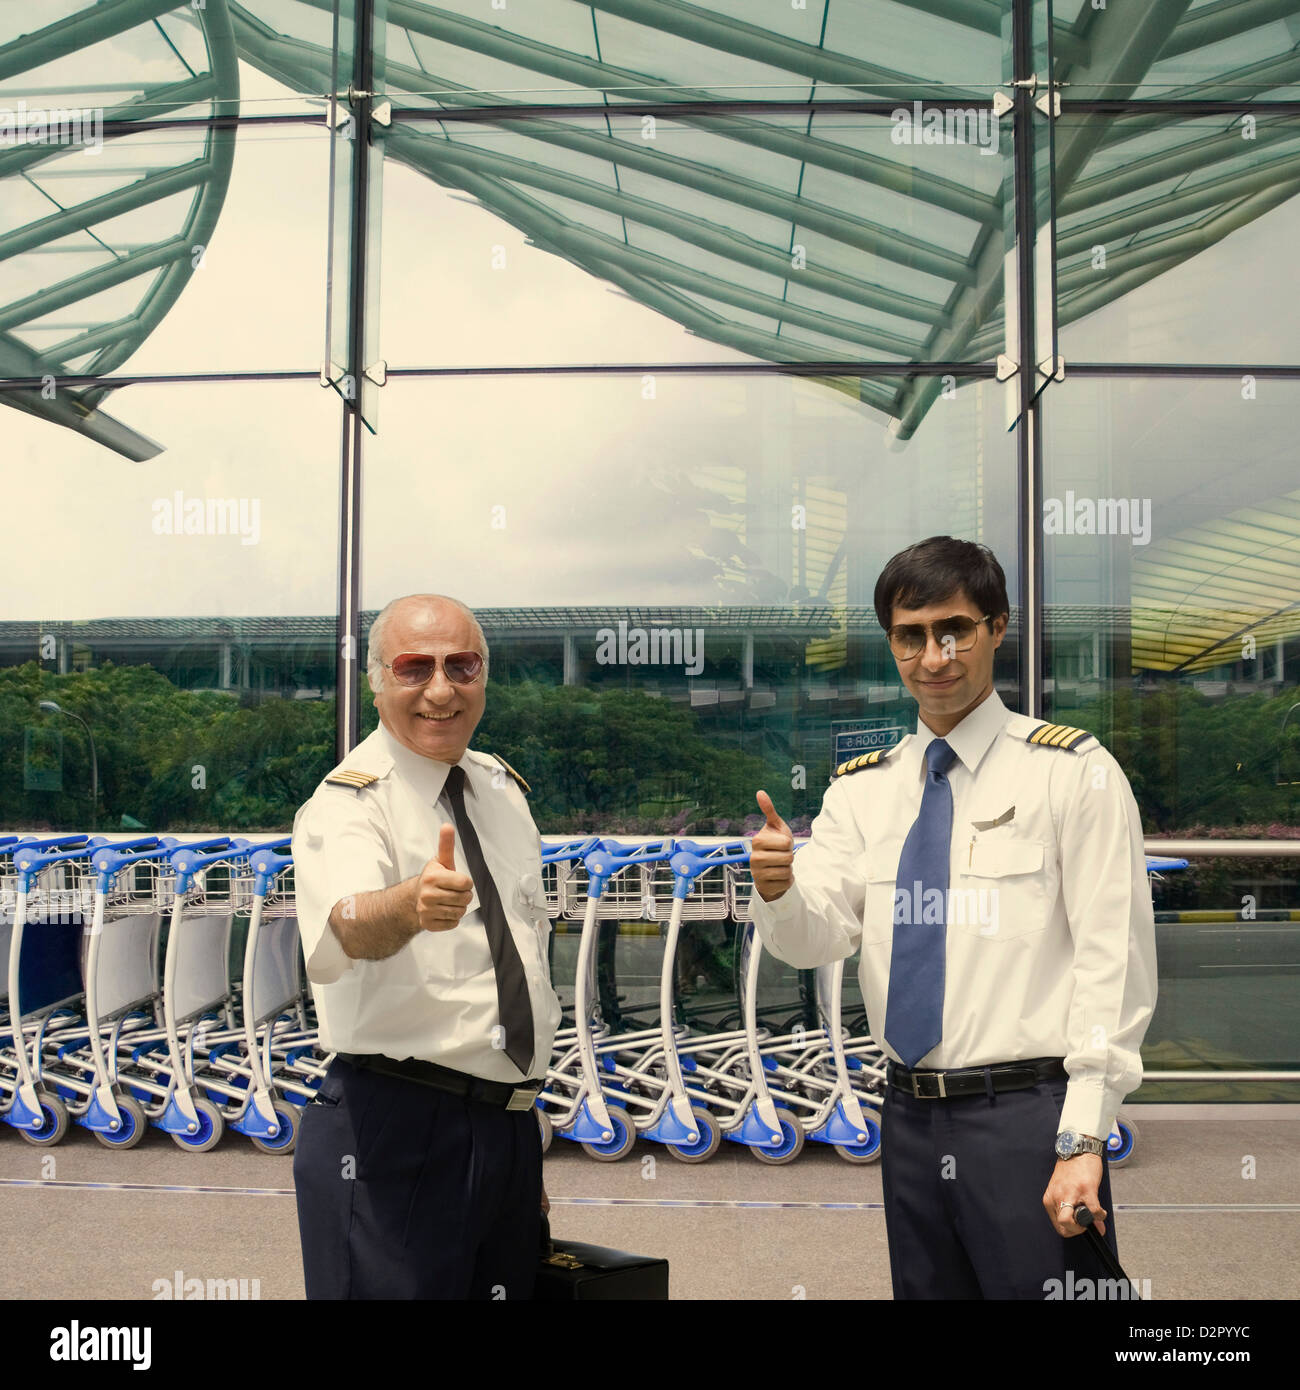 Two pilots showing thumbs up at an airport - Stock Image